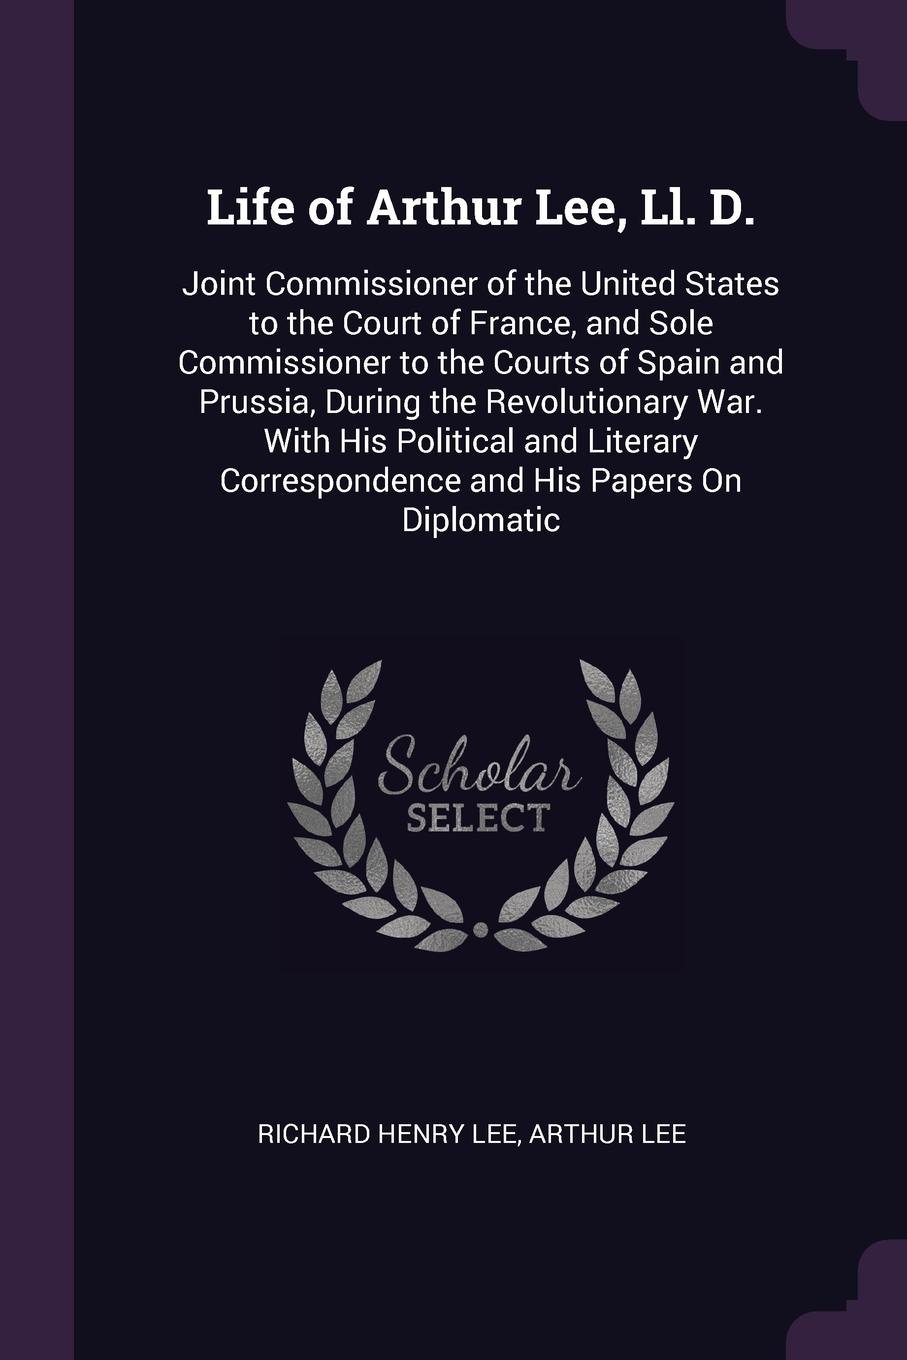 Life of Arthur Lee, Ll. D. Joint Commissioner of the United States to the Court of France, and Sole Commissioner to the Courts of Spain and Prussia, During the Revolutionary War. With His Political and Literary Correspondence and His Papers On Dip...